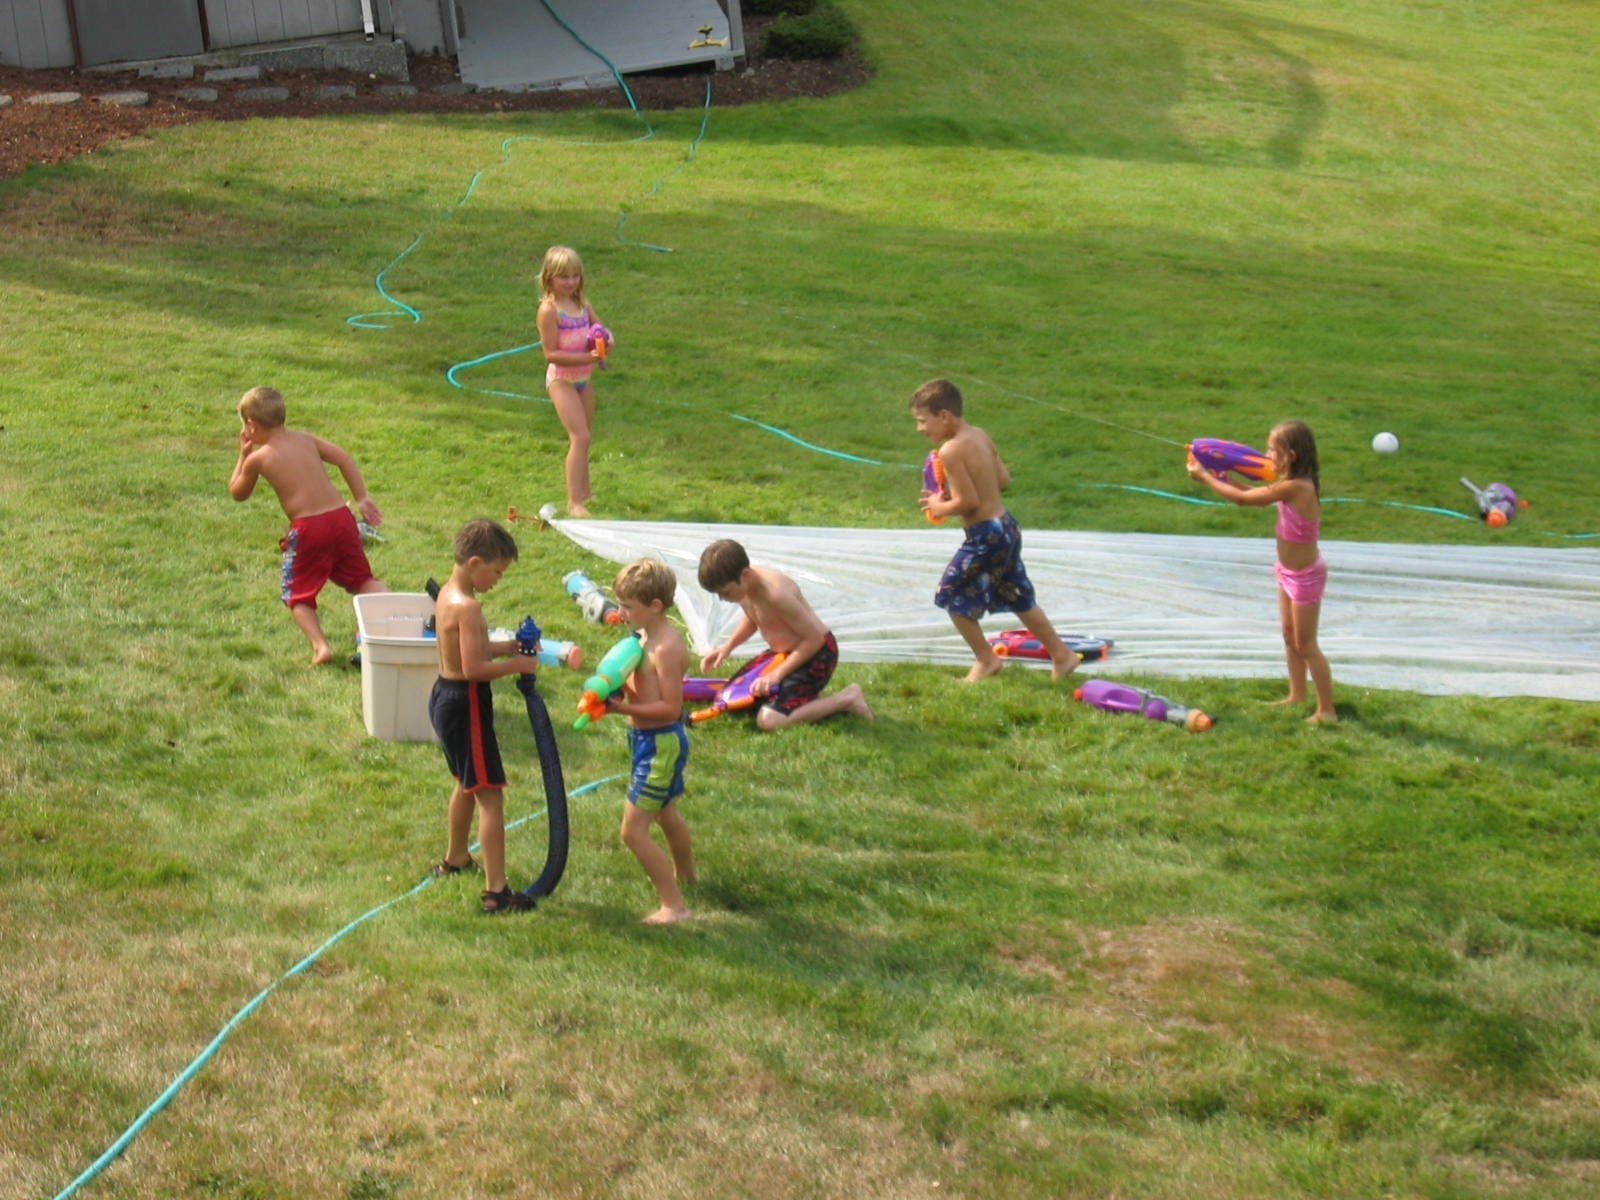 Slip 'n Slide was a fixture of Family Reunion (~2001-2007)